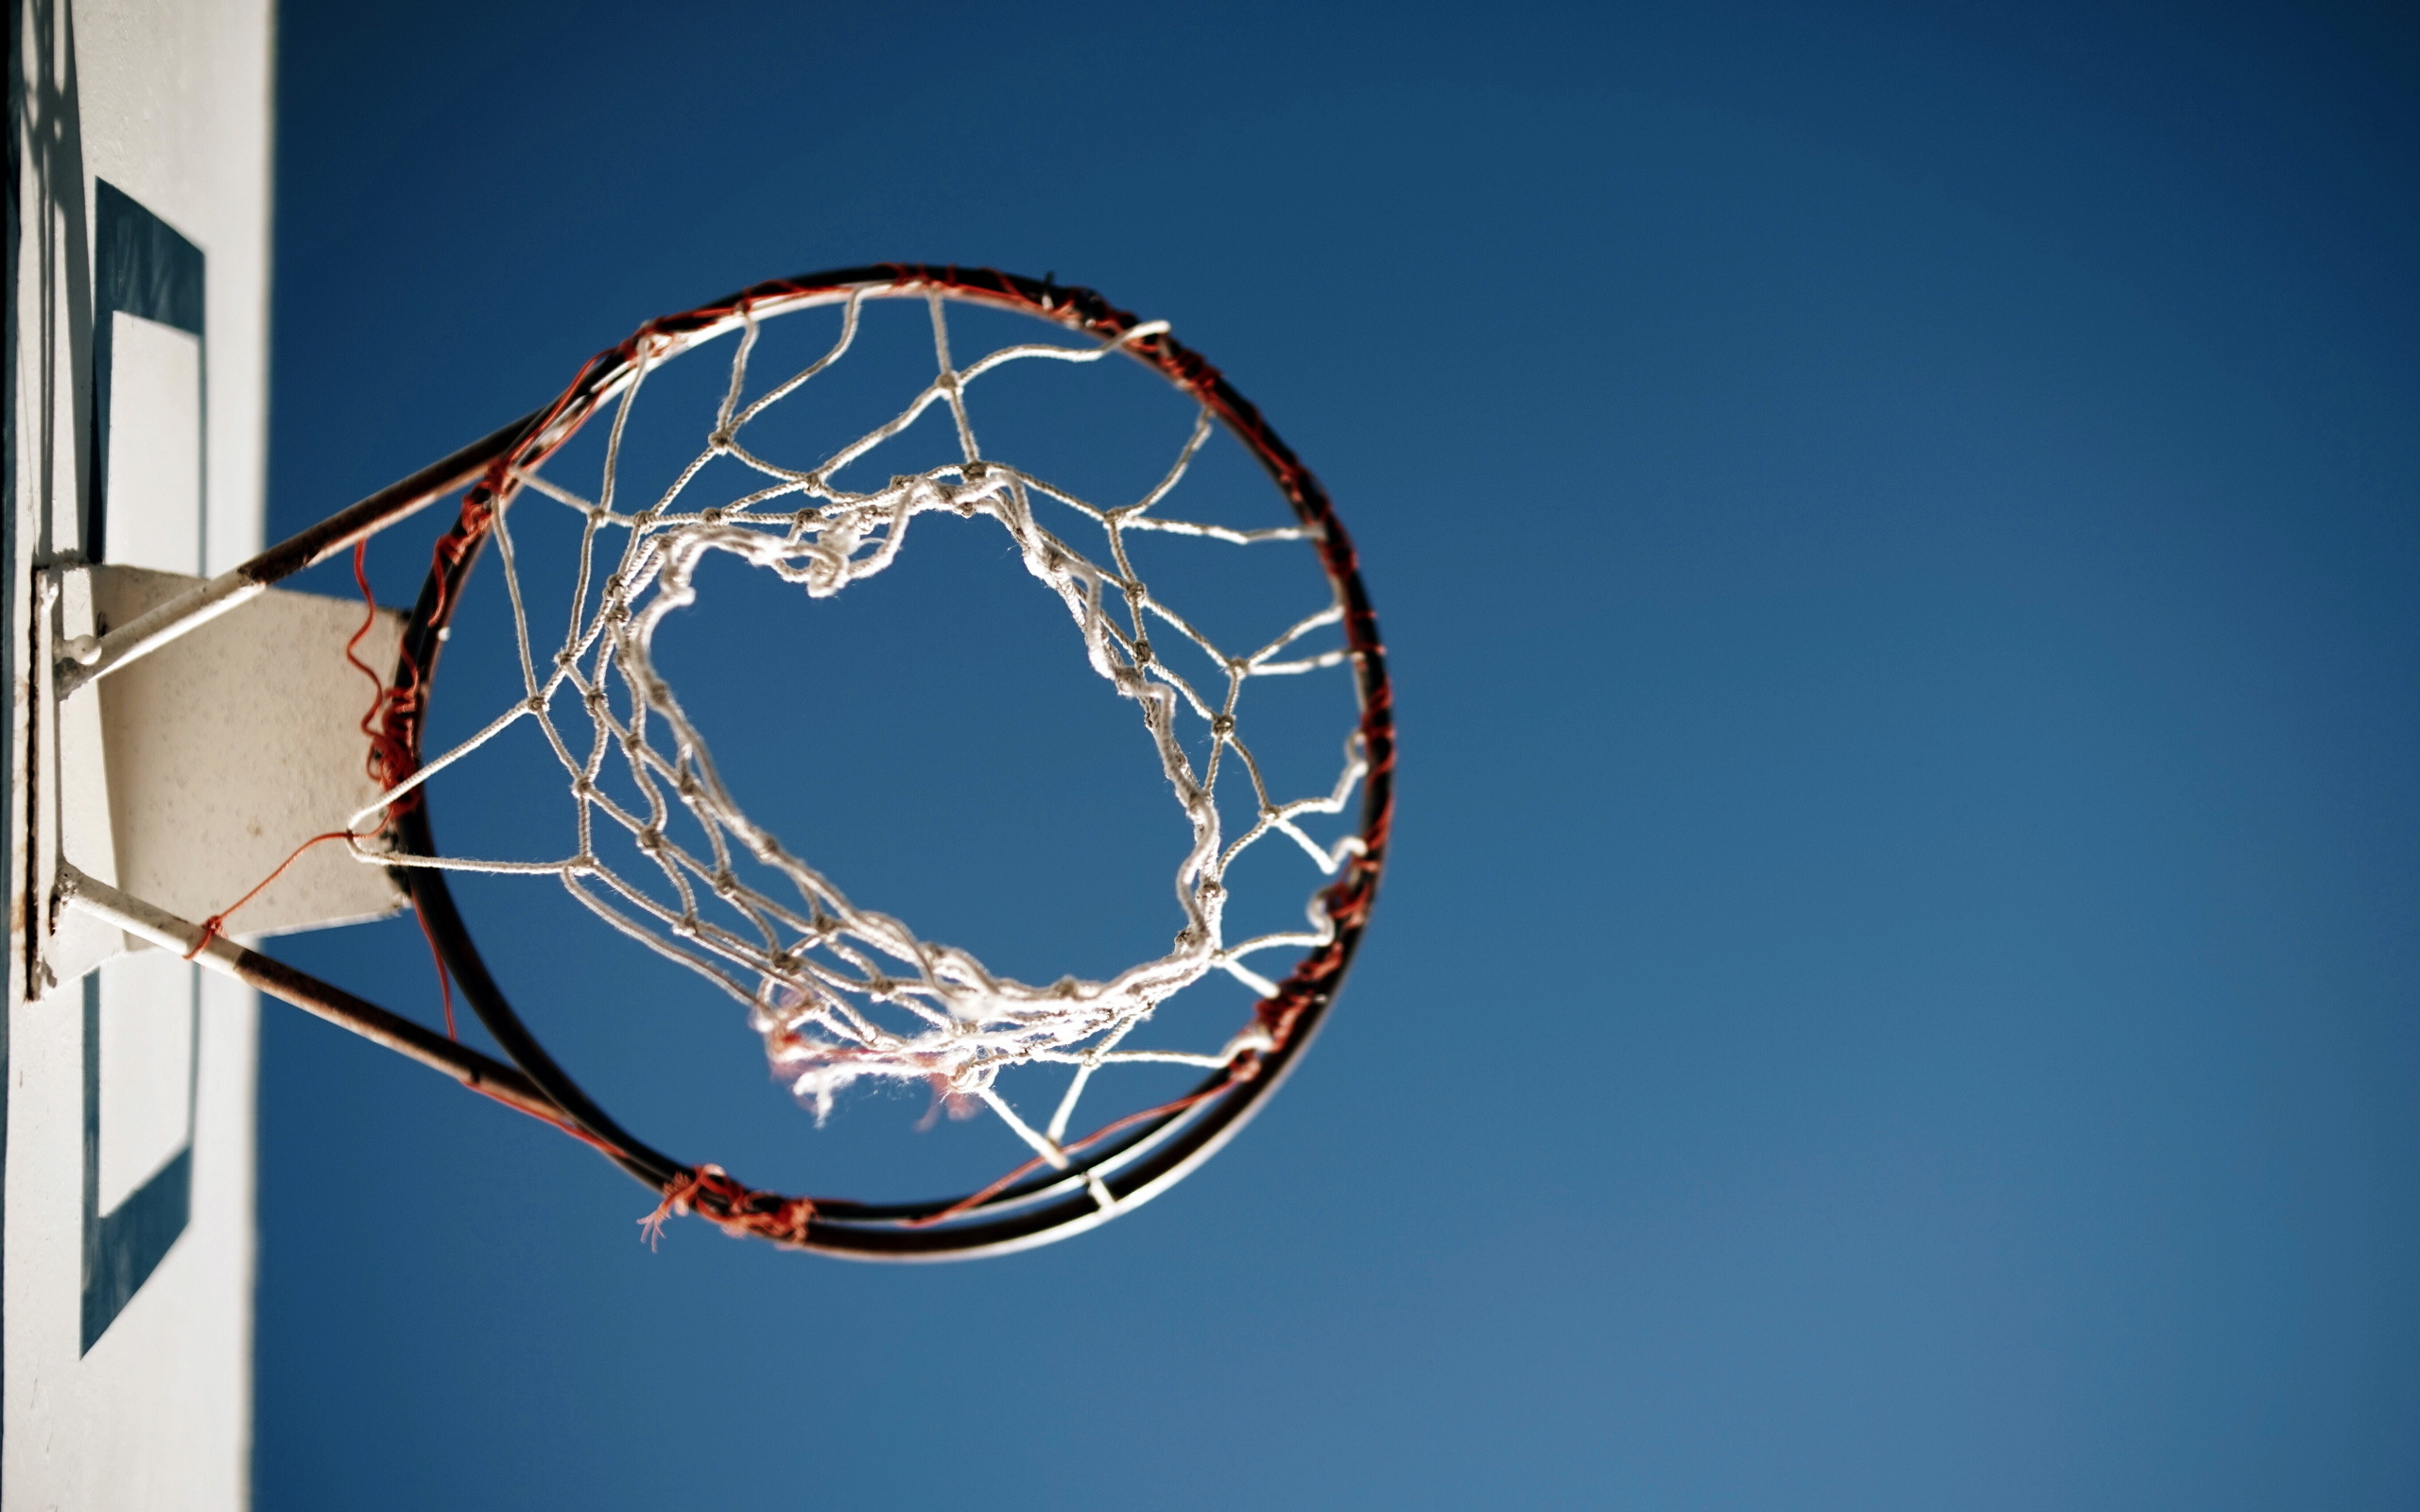 Basketball 4k Wallpapers For Your Desktop Or Mobile Screen Free